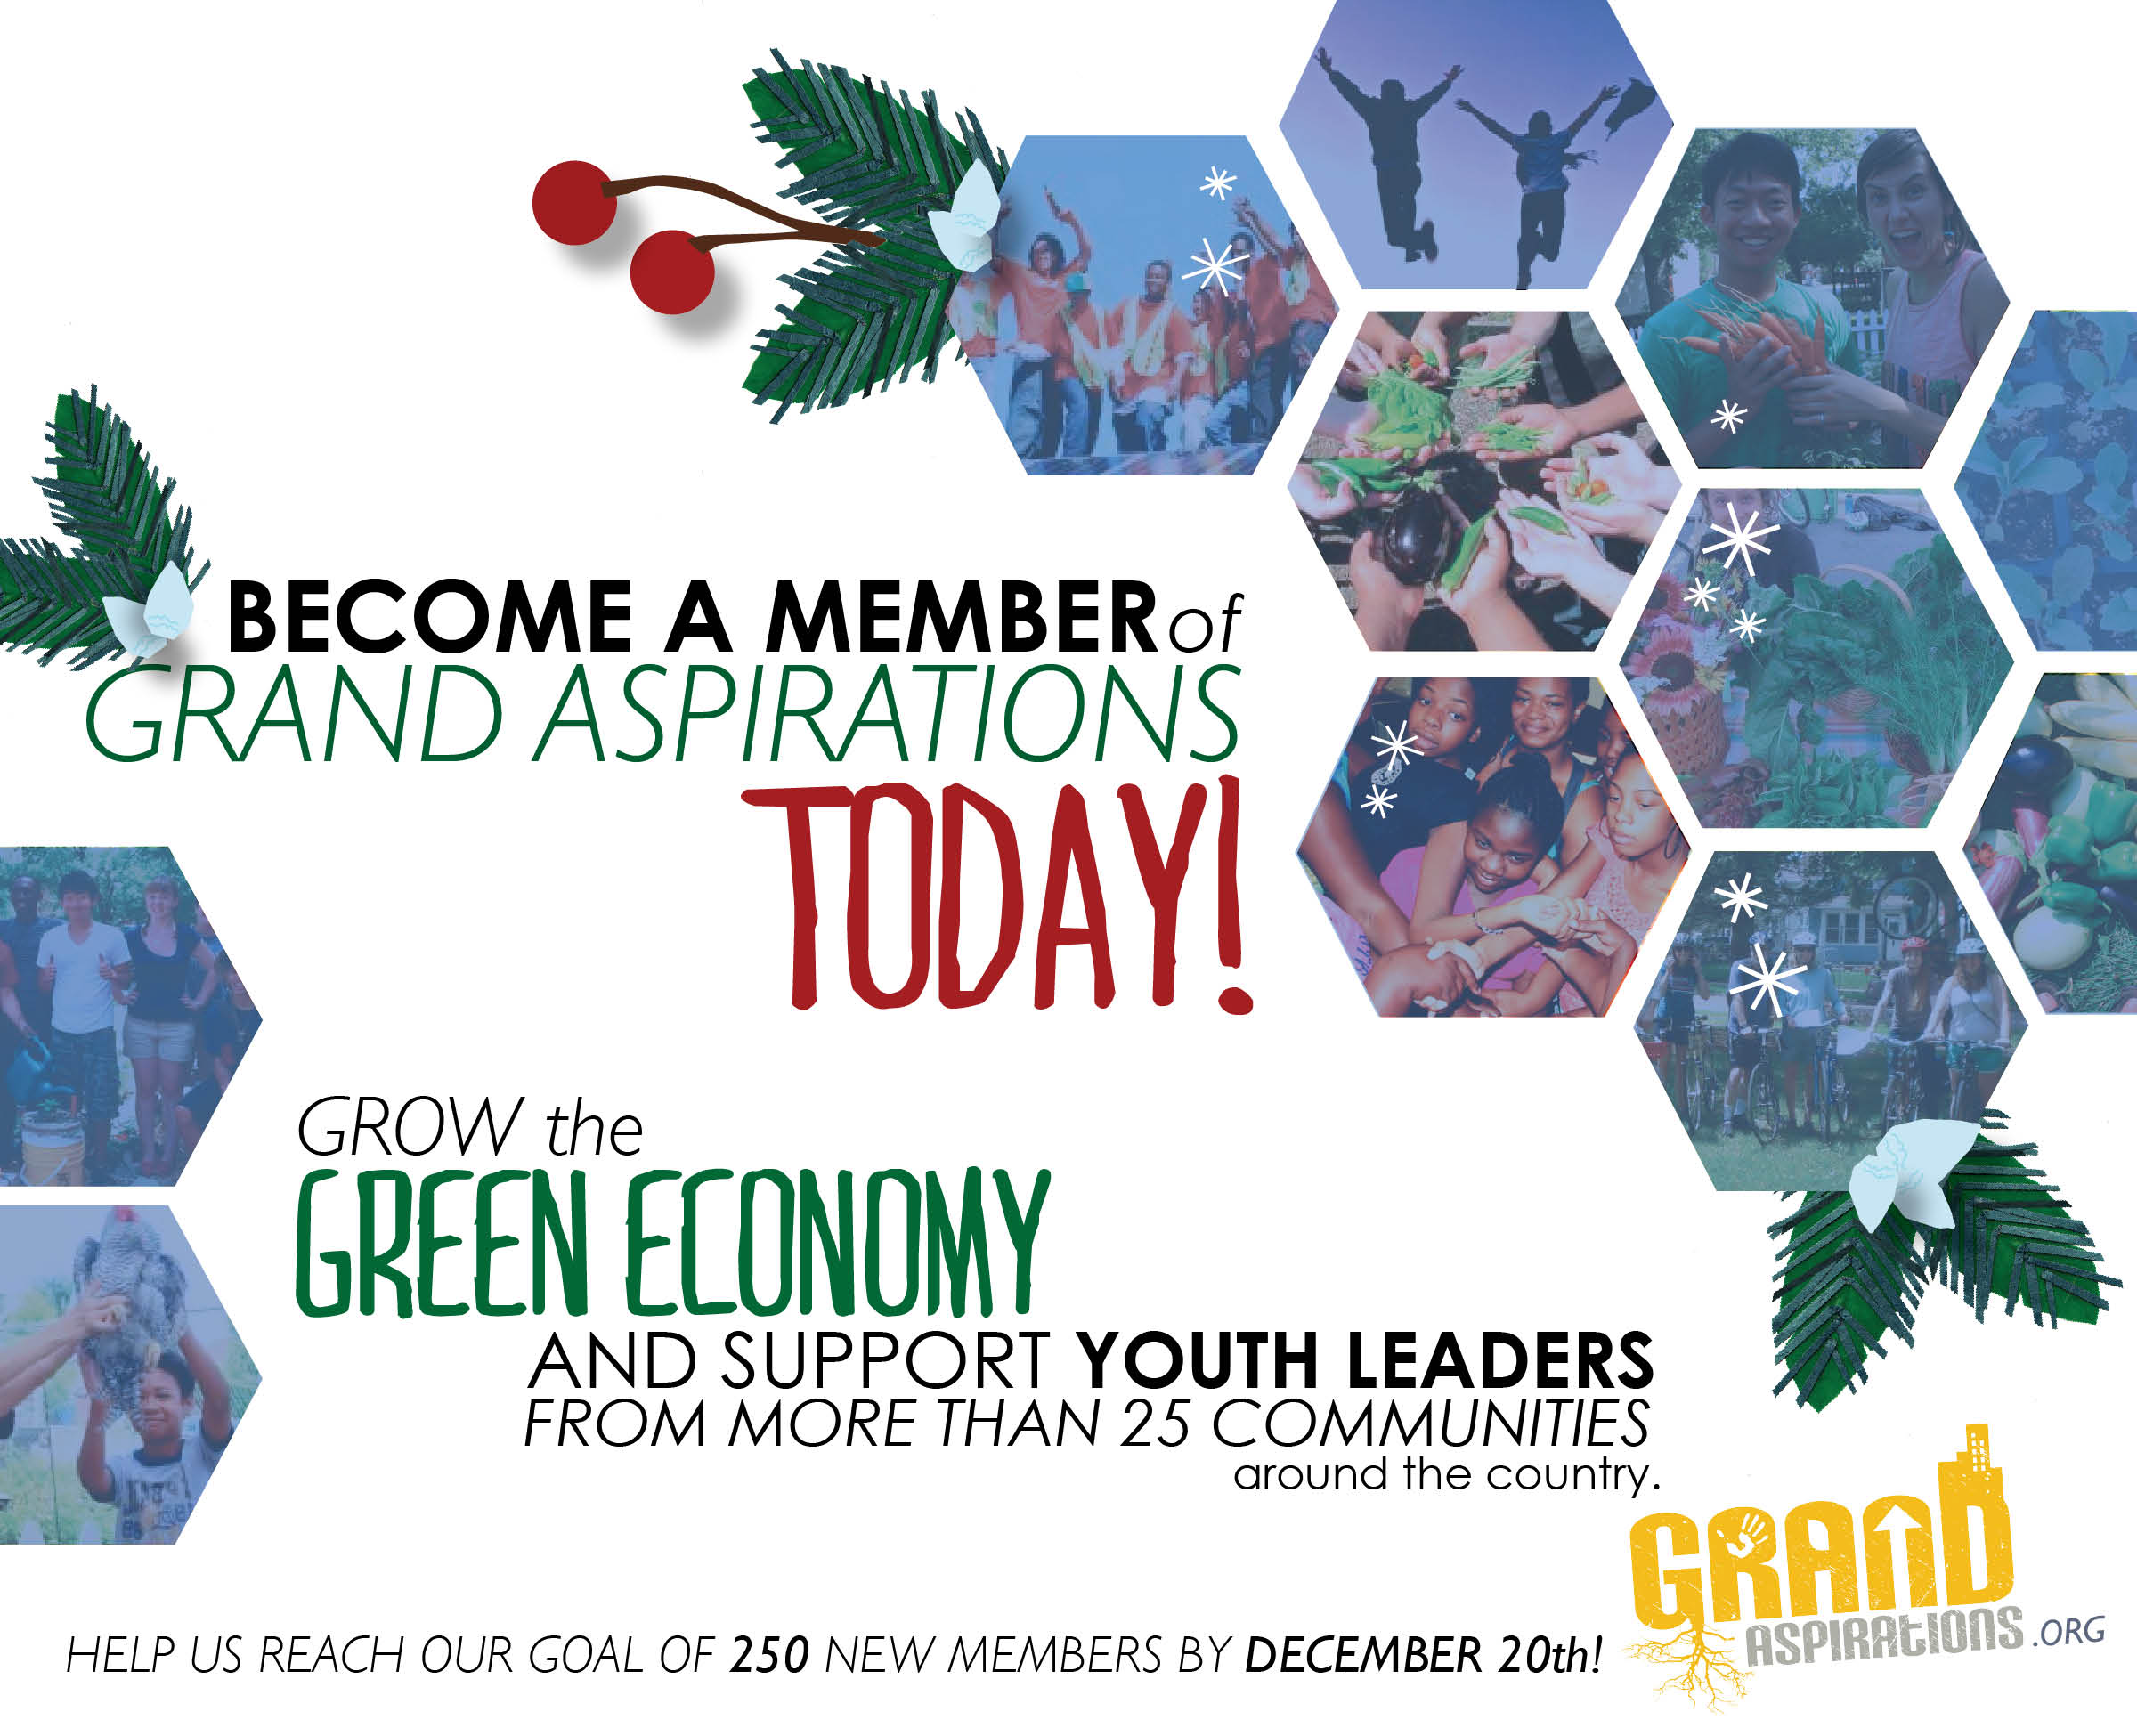 Become a member of Grand Aspirations today!